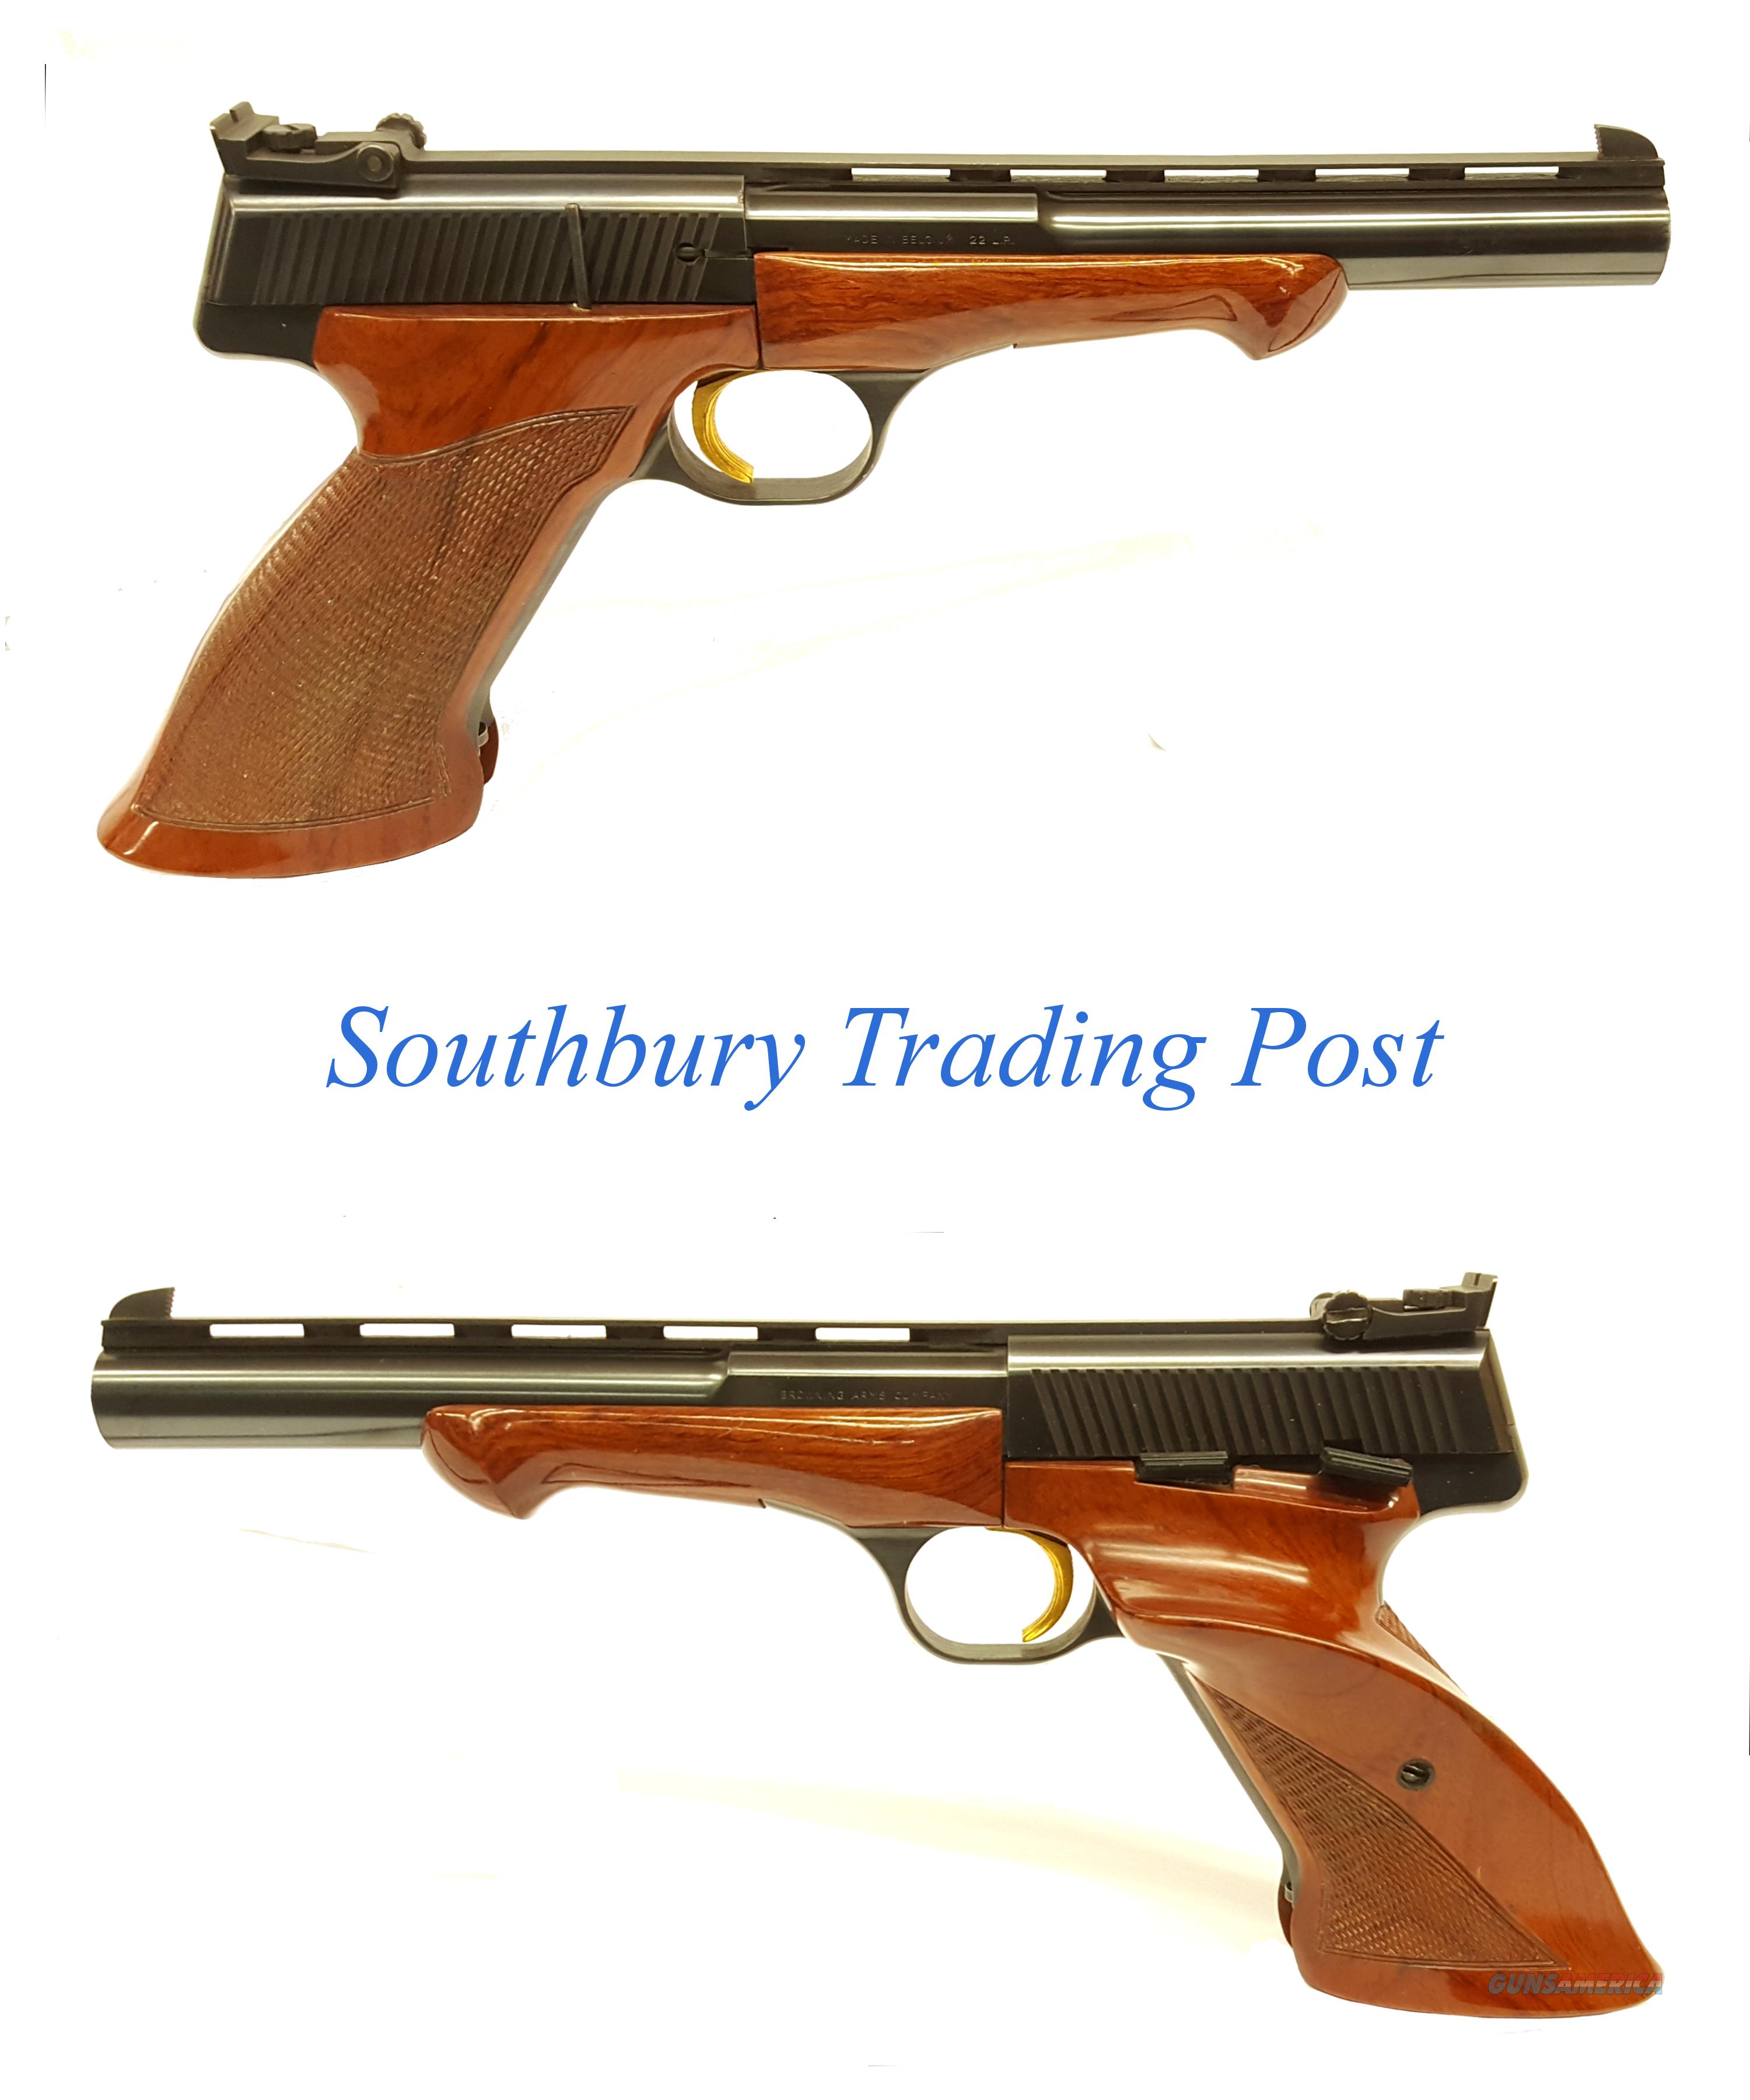 Browning Medalist .22 Long Rifle Semi-Automatic Pistol ( Price Reduced )**  Guns > Pistols > Browning Pistols > Other Autos